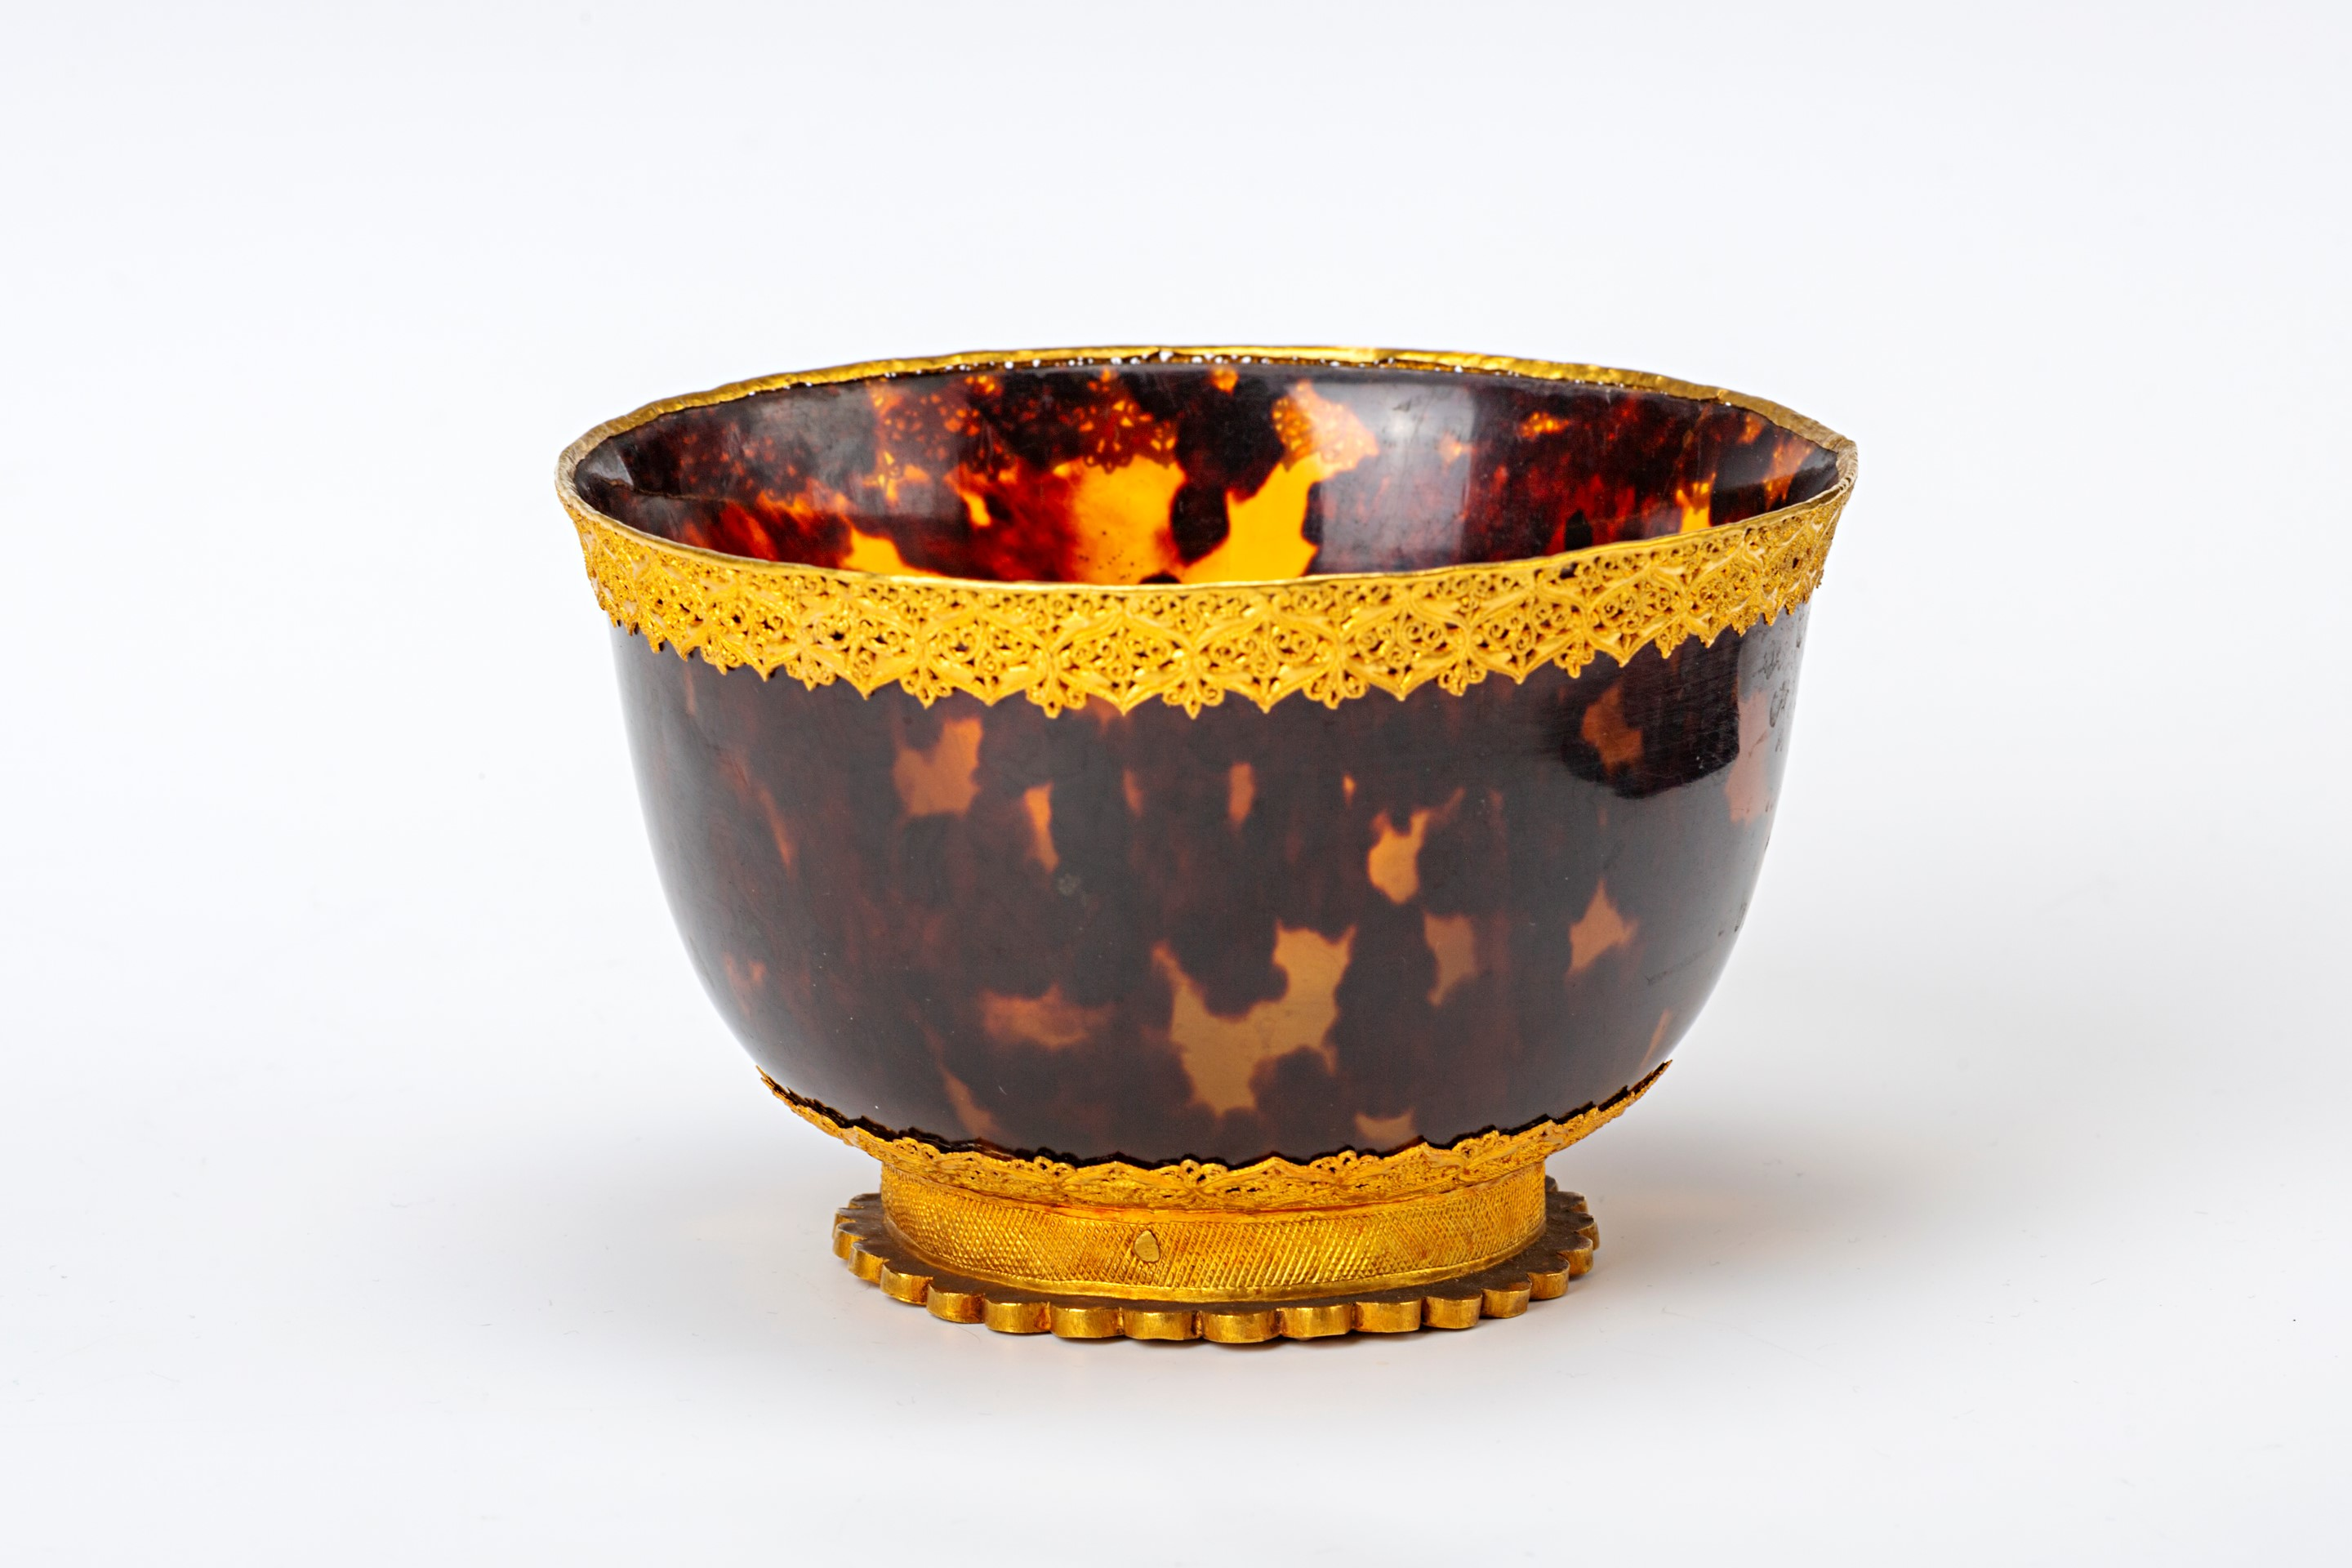 An Indian or South East Asian gold filigree-mounted tortoiseshell bowl, 17th Century.